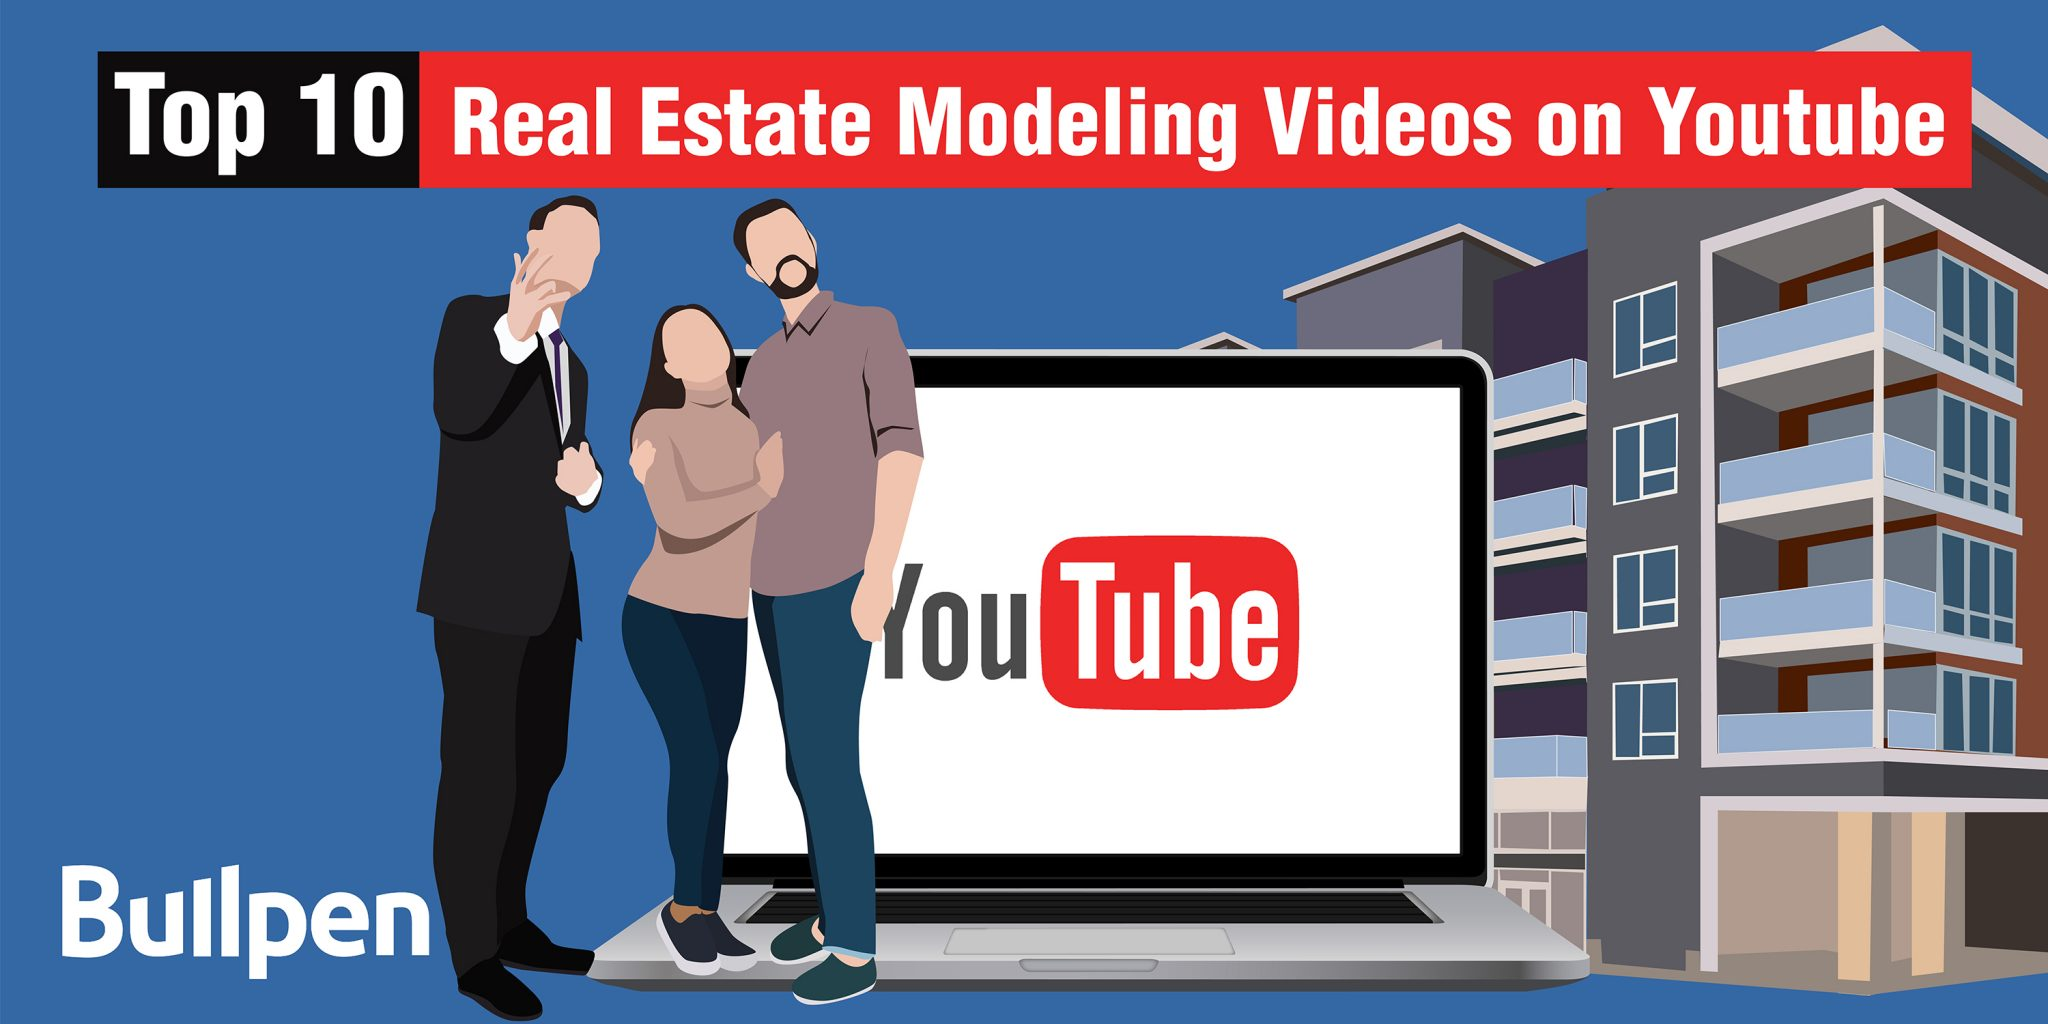 Top 10 Real Estate Modeling Videos on Youtube